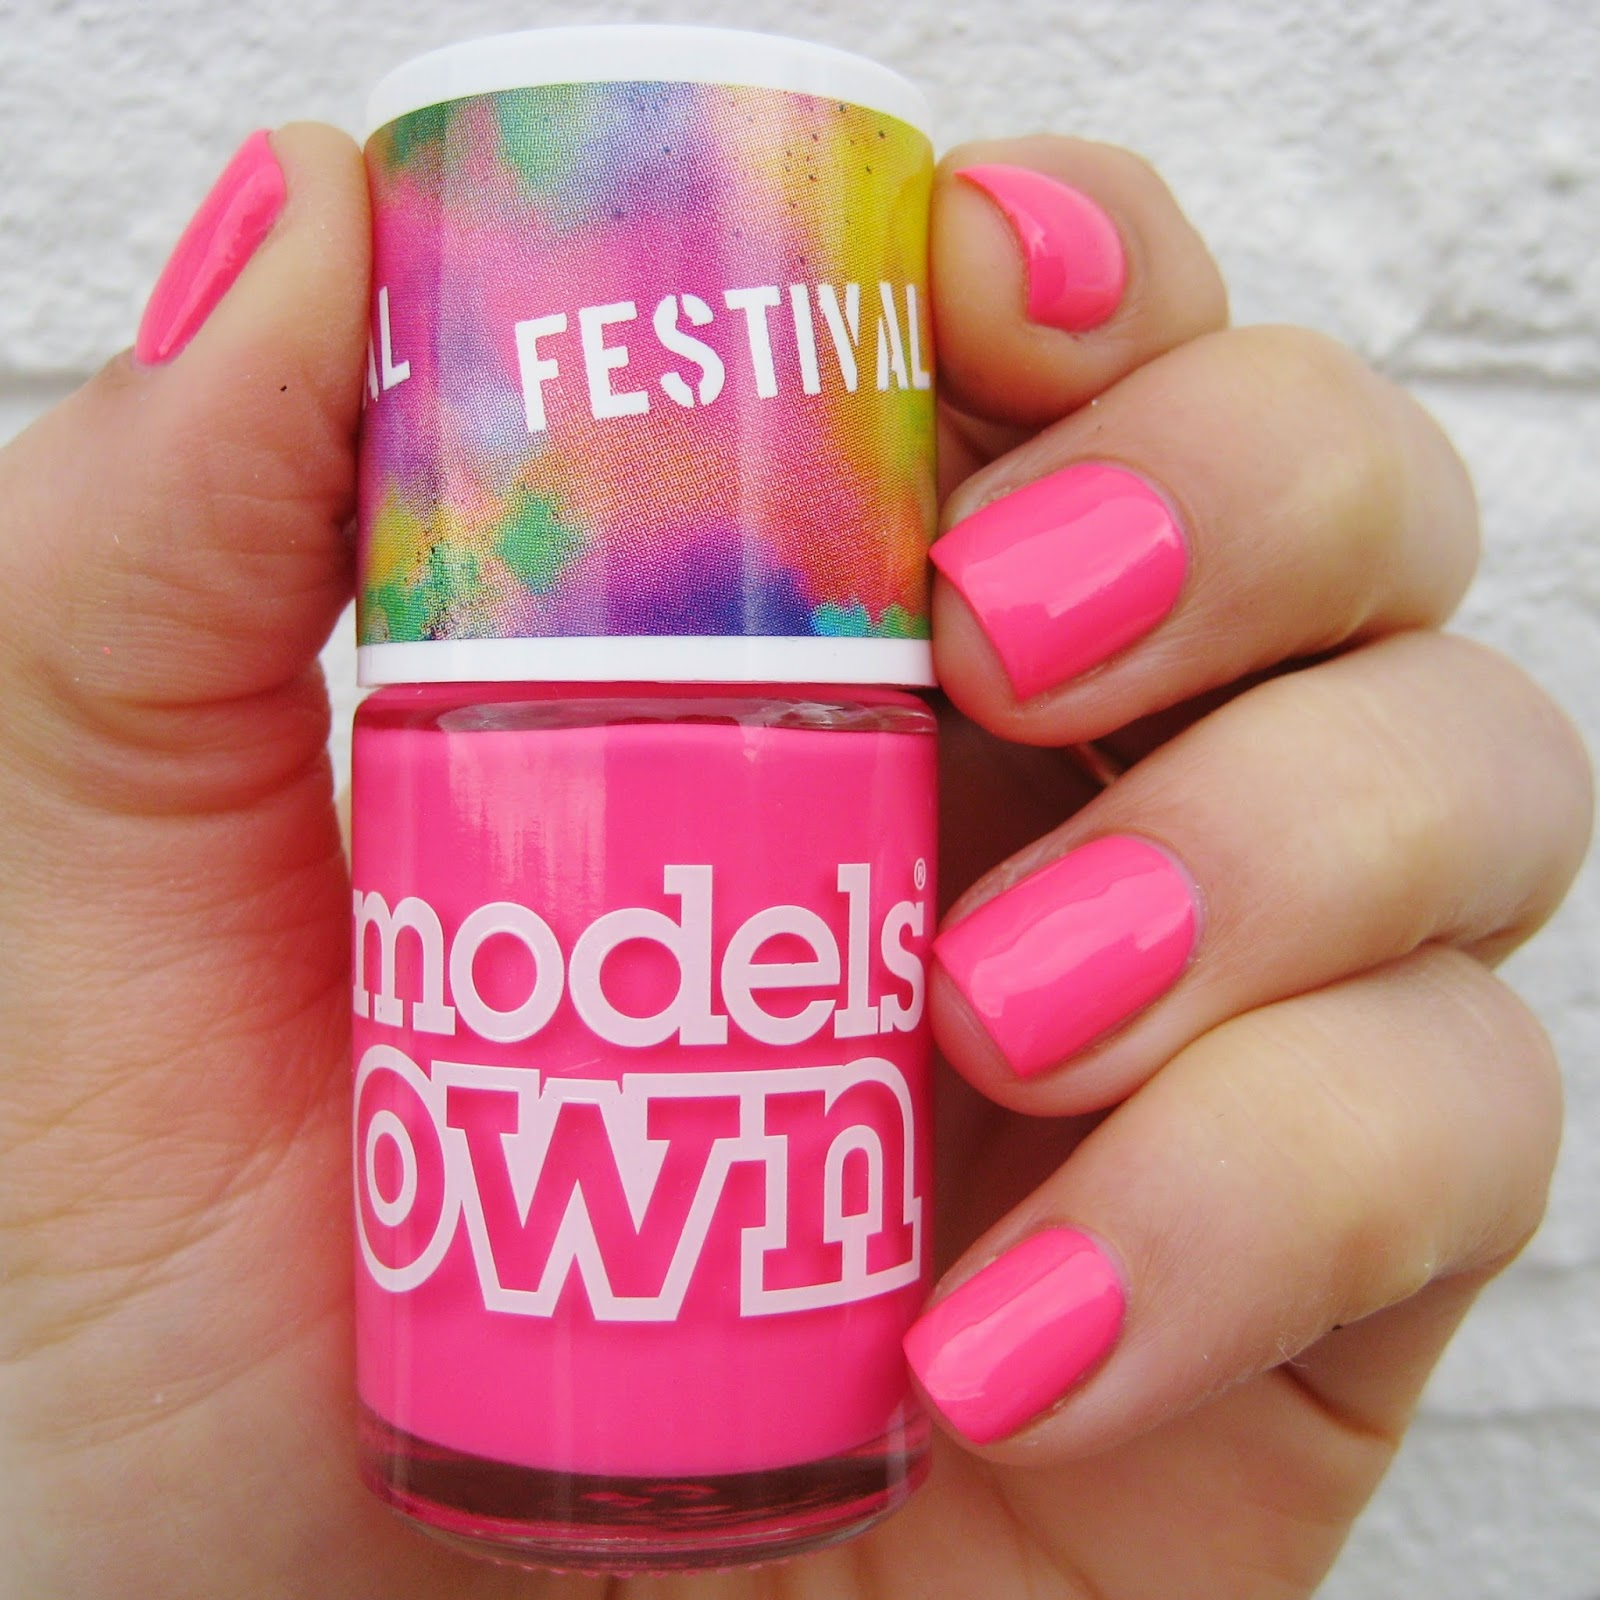 Models Own Festival Nail Polish Pink Wellies